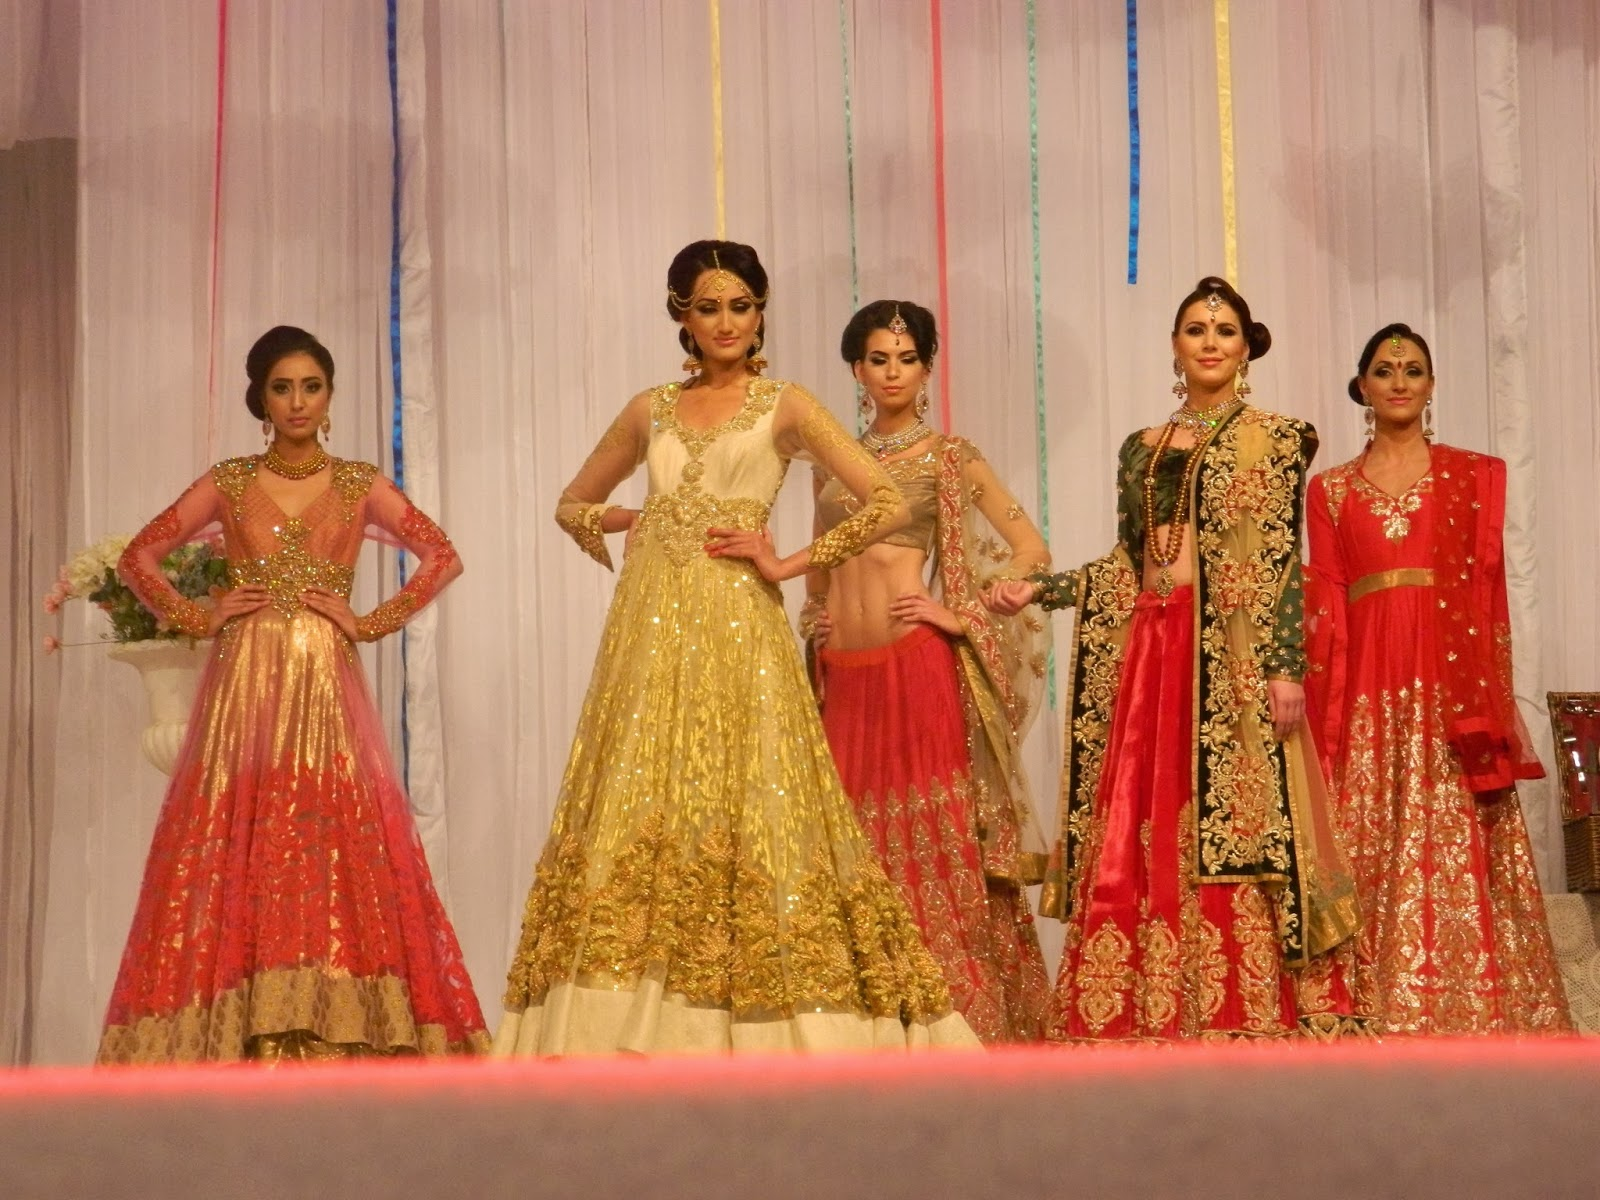 Asian Bride Live Birmingham Fashion Show #1 - Asian Wedding Ideas